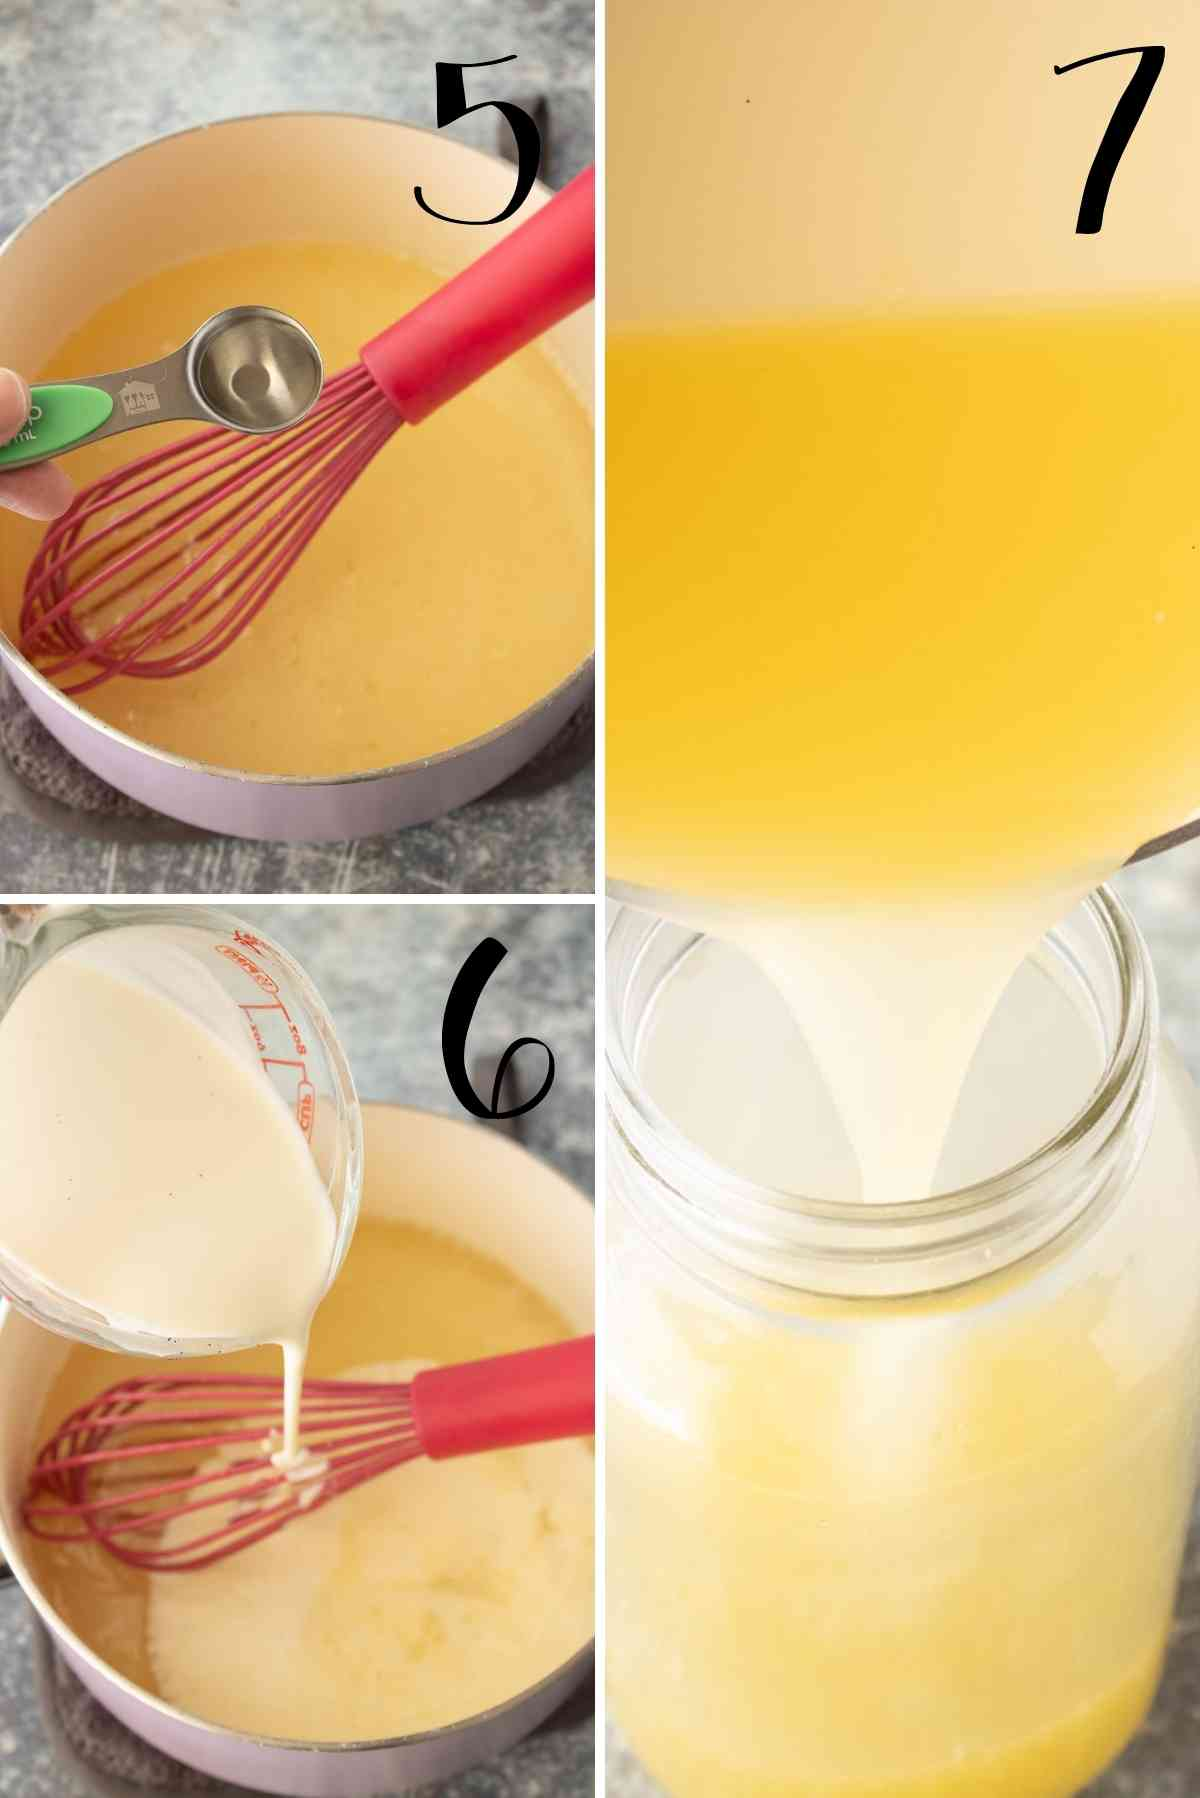 Lemon extract and cream added to finish this simple syrup.  Leftover syrup poured and stored in a jar.